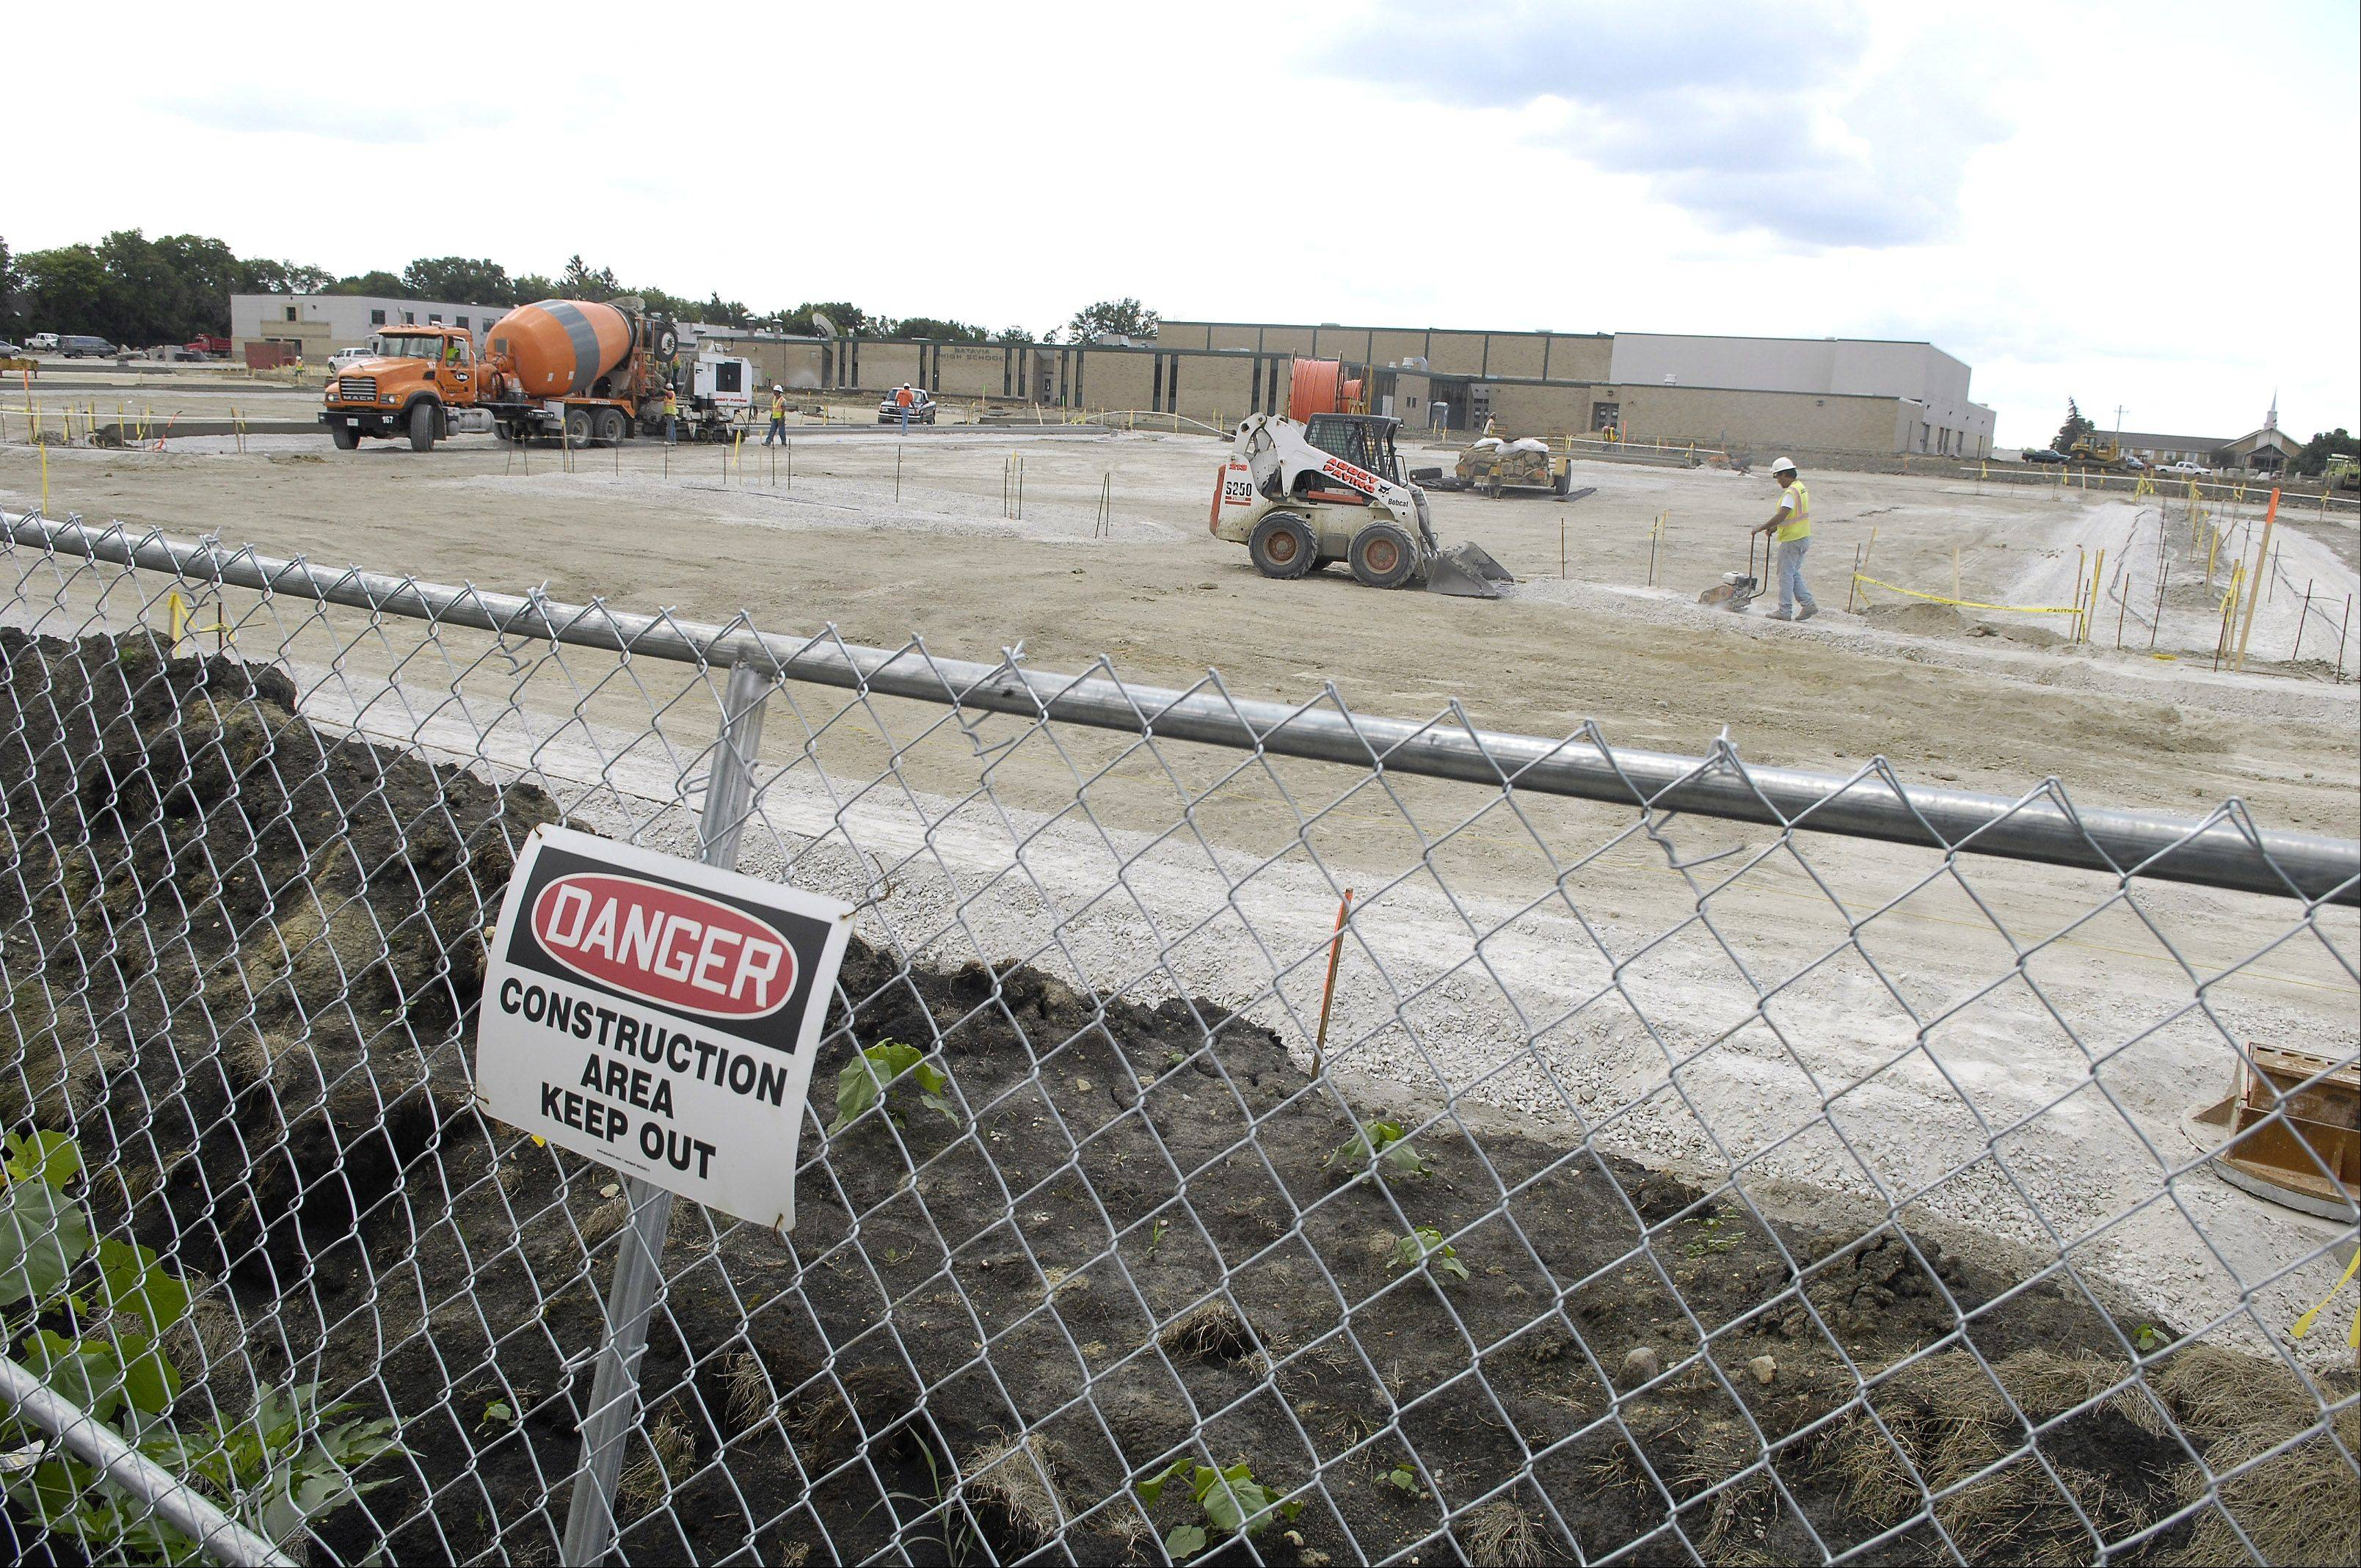 The entire rear lot of Batavia High School is under construction here in 2008. Impact fees for new businesses are used for road construction to help local infrastructure cope with increased usage. School districts generally welcome impact fees to help with structural costs.